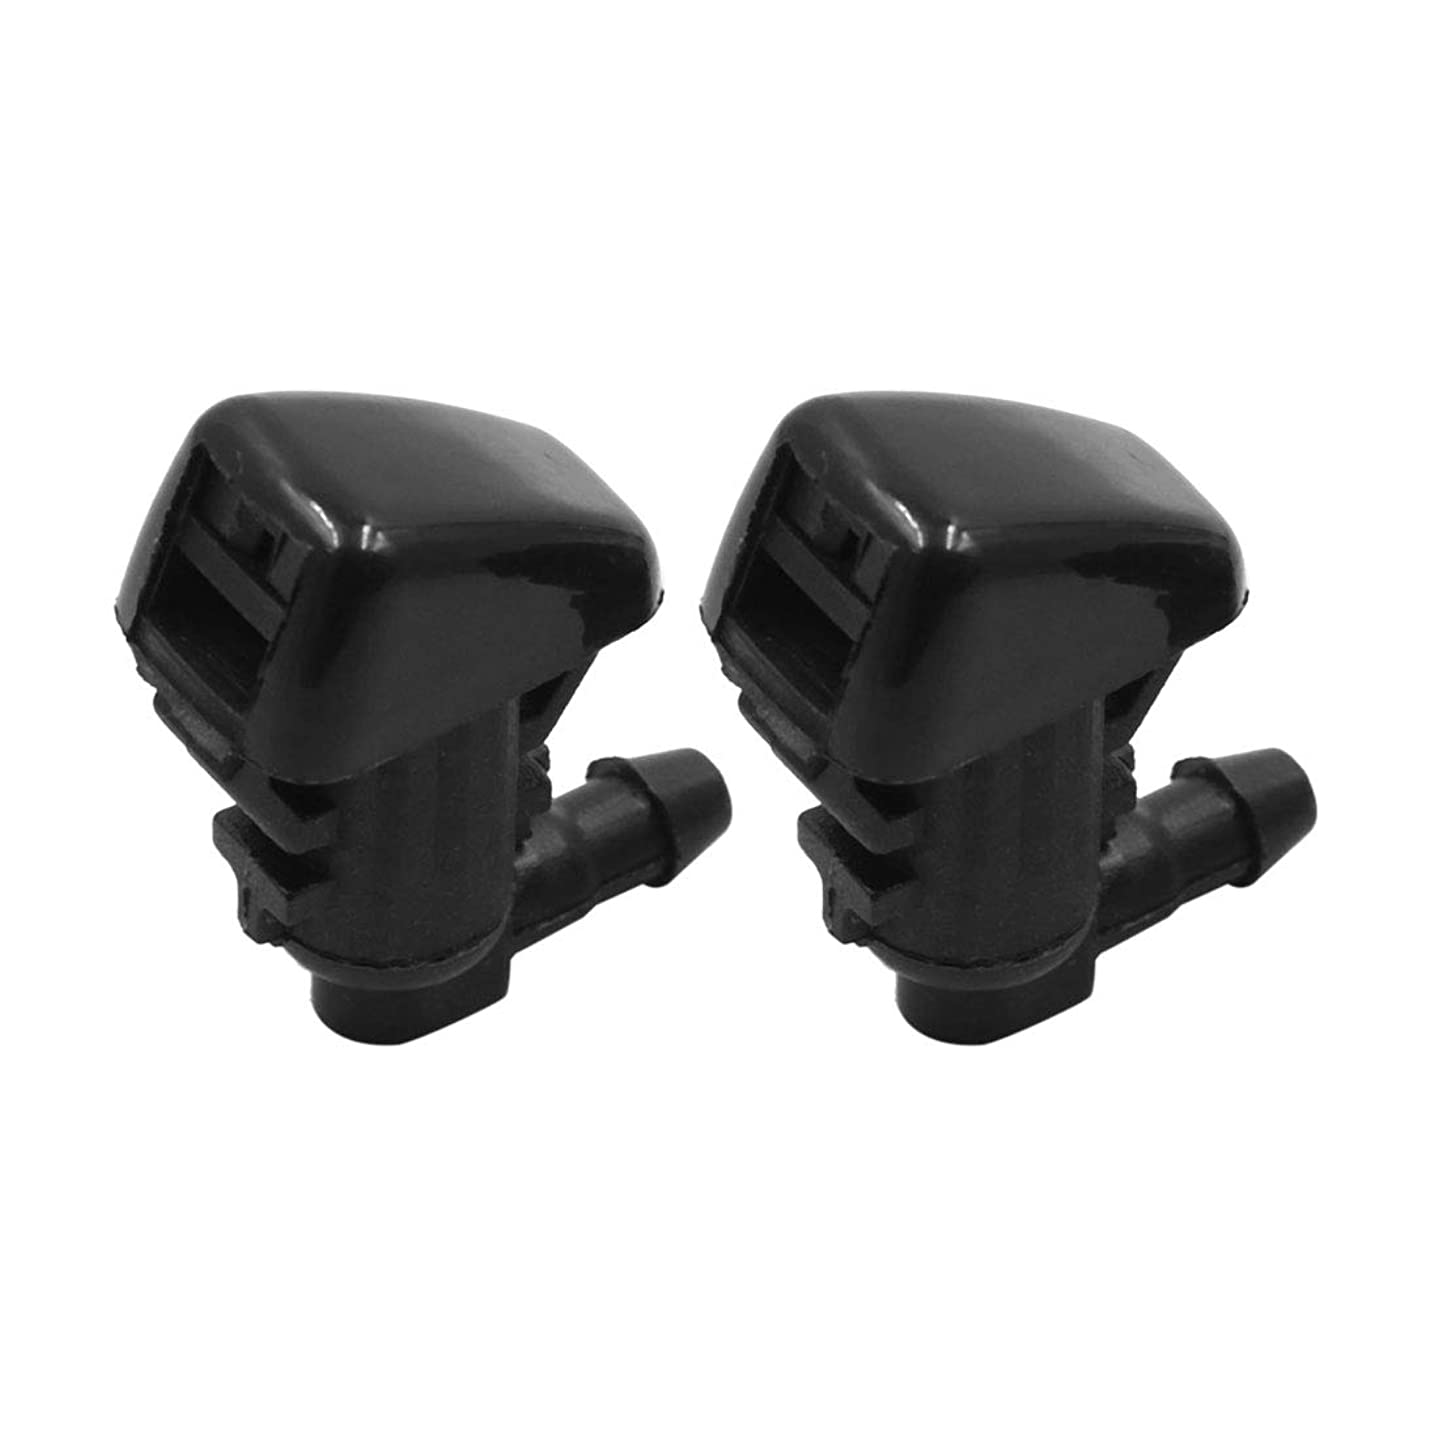 X AUTOHAUX 2pcs Black Plastic Front Windshield Wiper Nozzles 55079049AA for Jeep Grand Cherokee 2005-2016